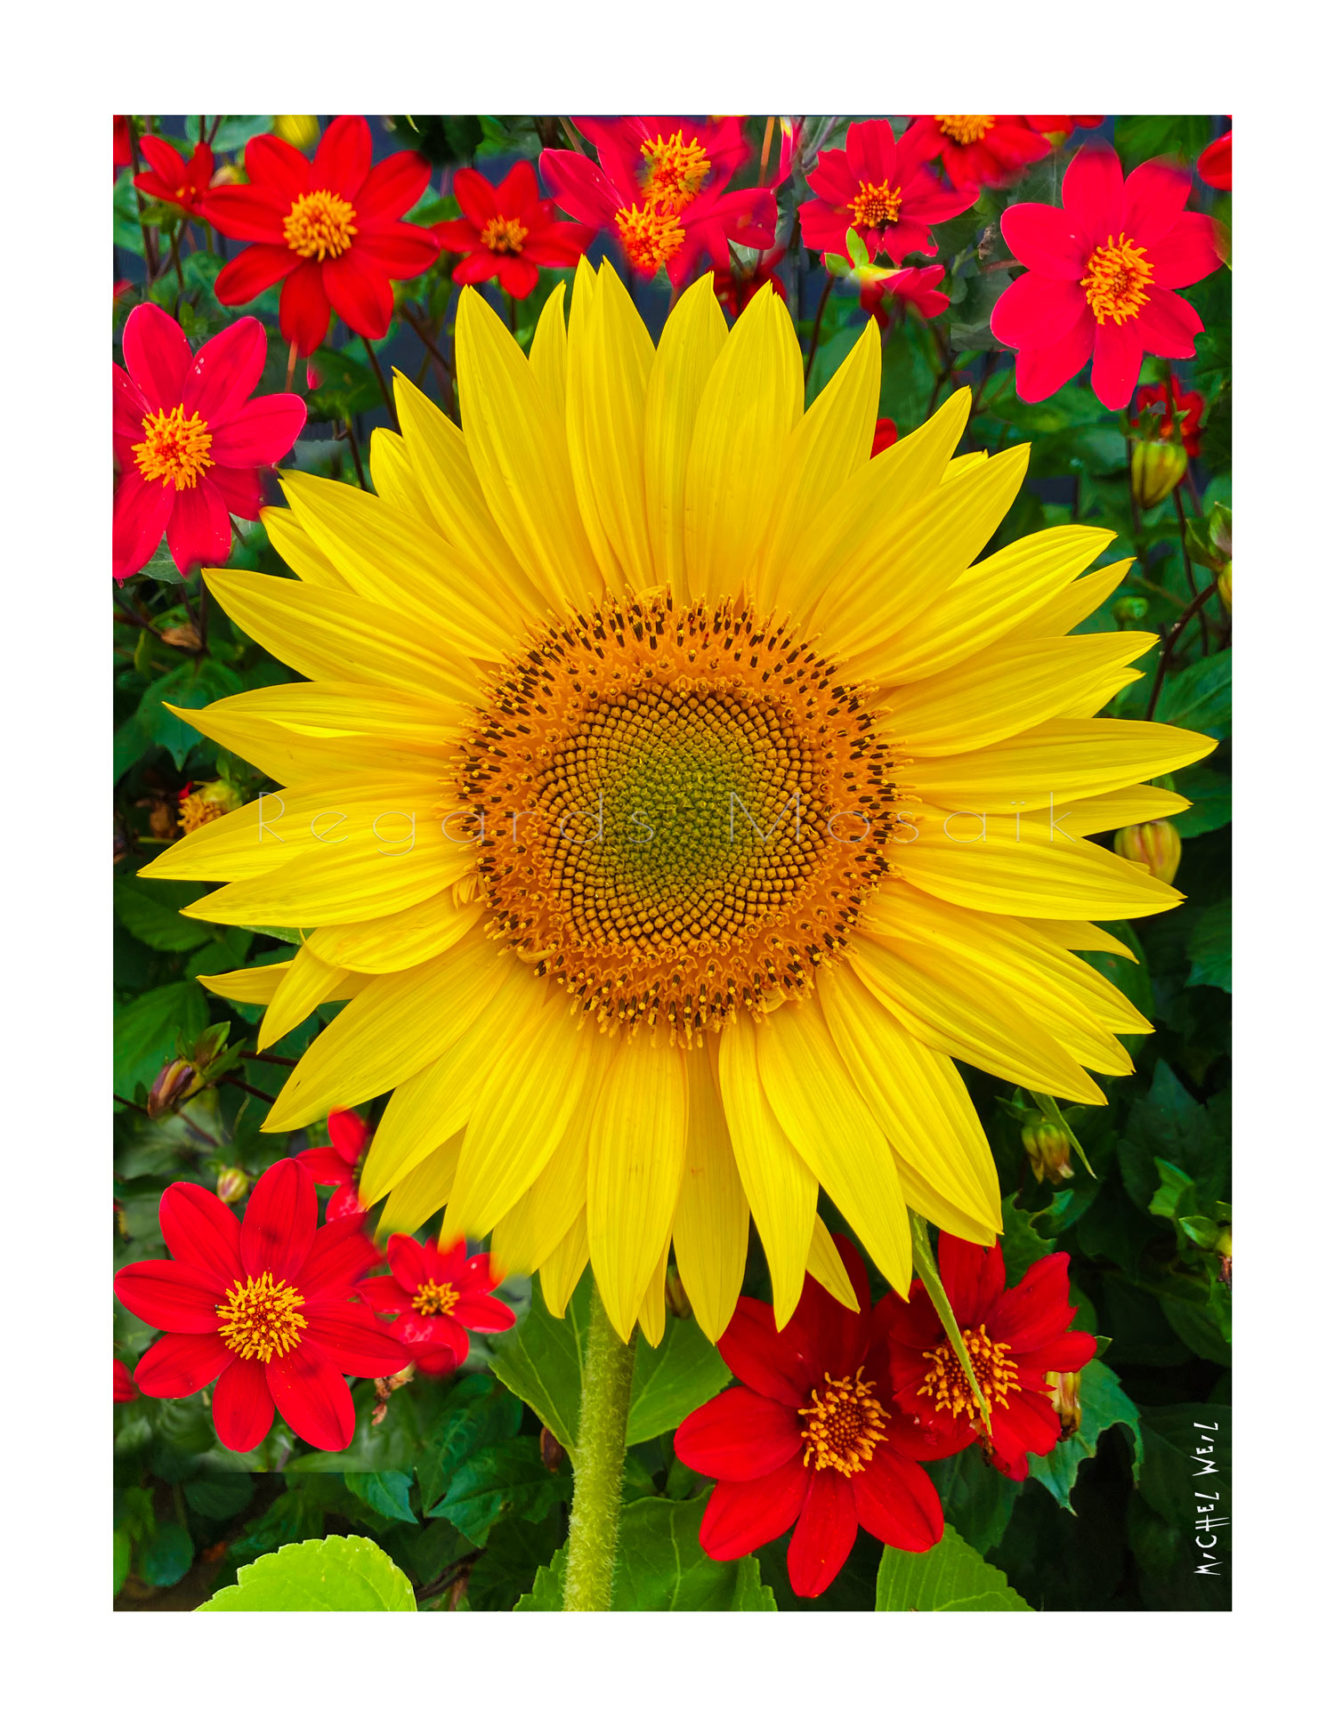 The tournesol and Co